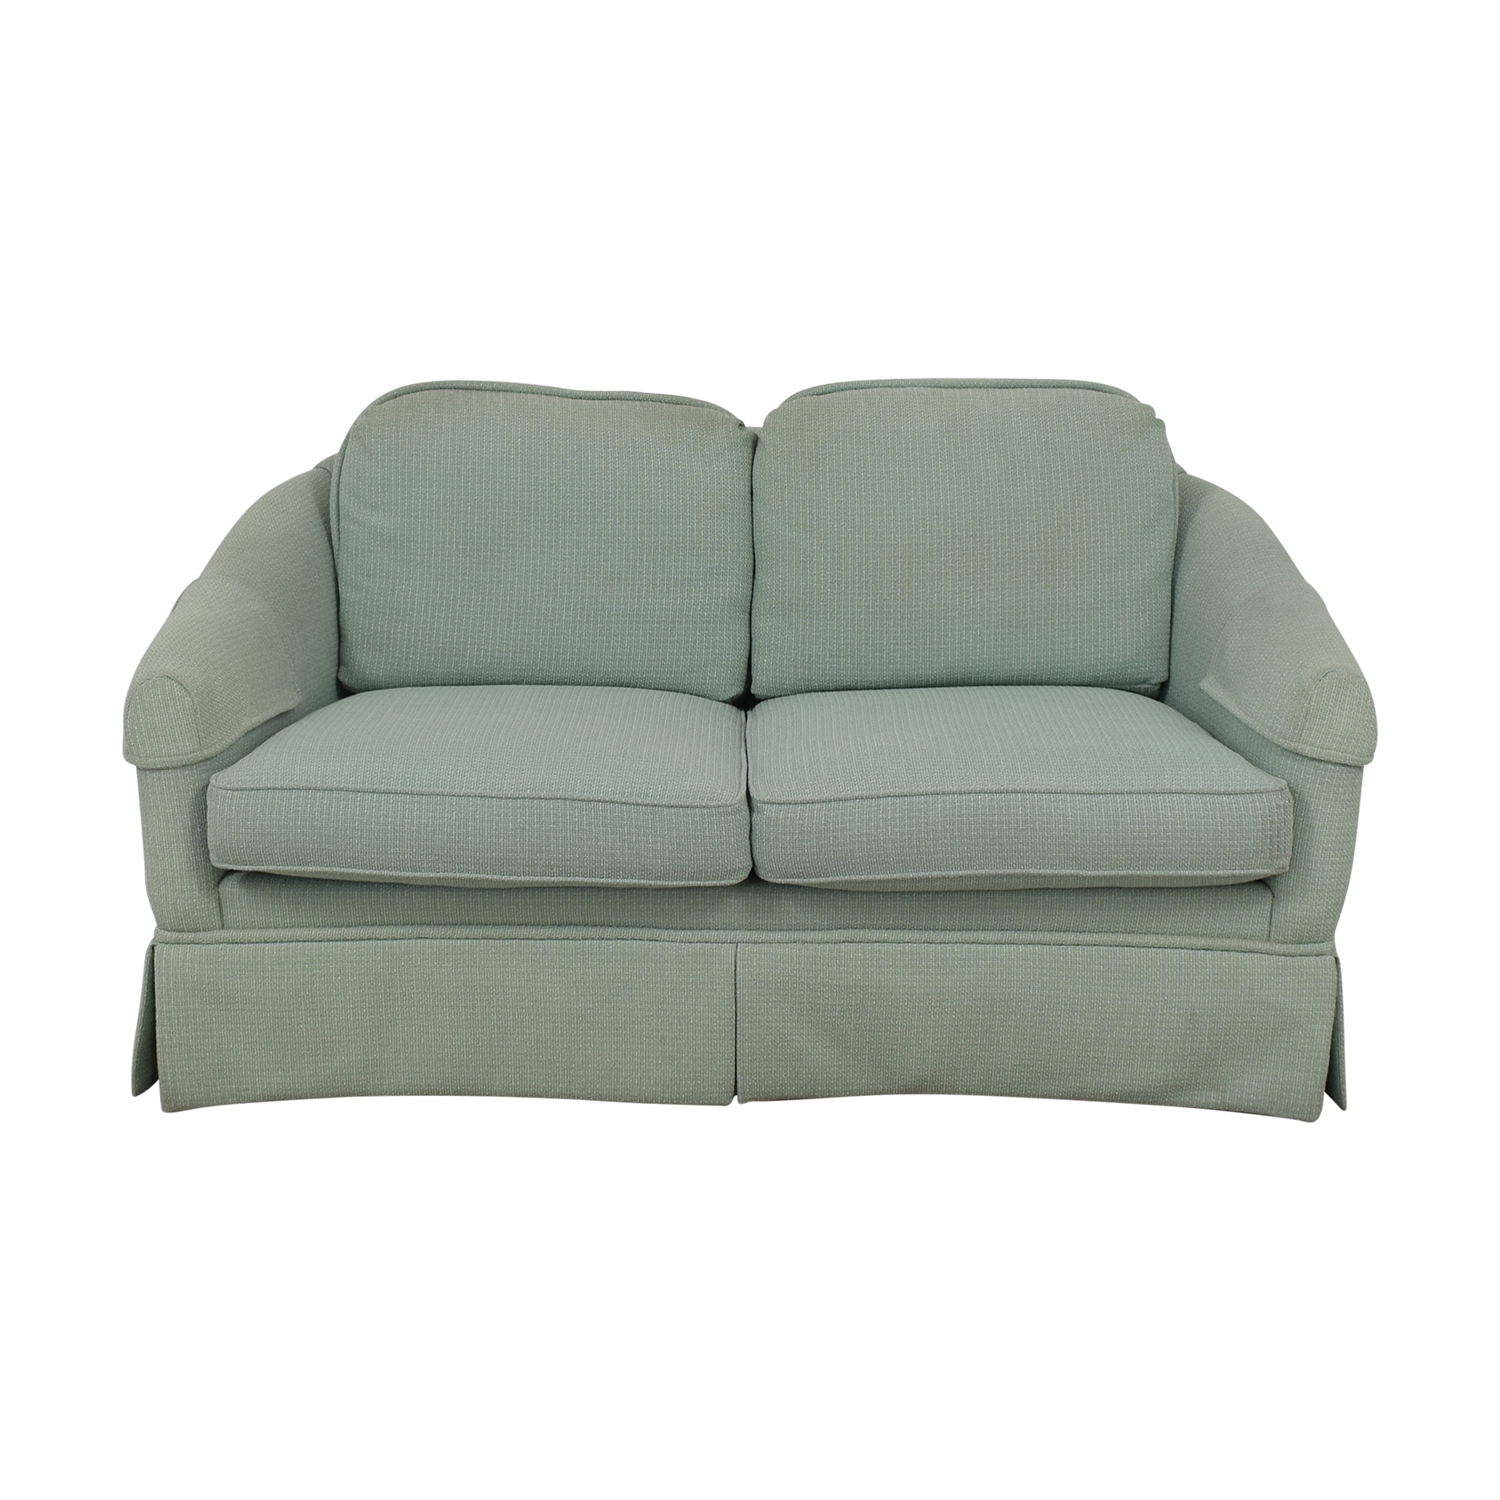 Hickory Chair Hickory Chair Two Cushion Loveseat dimensions